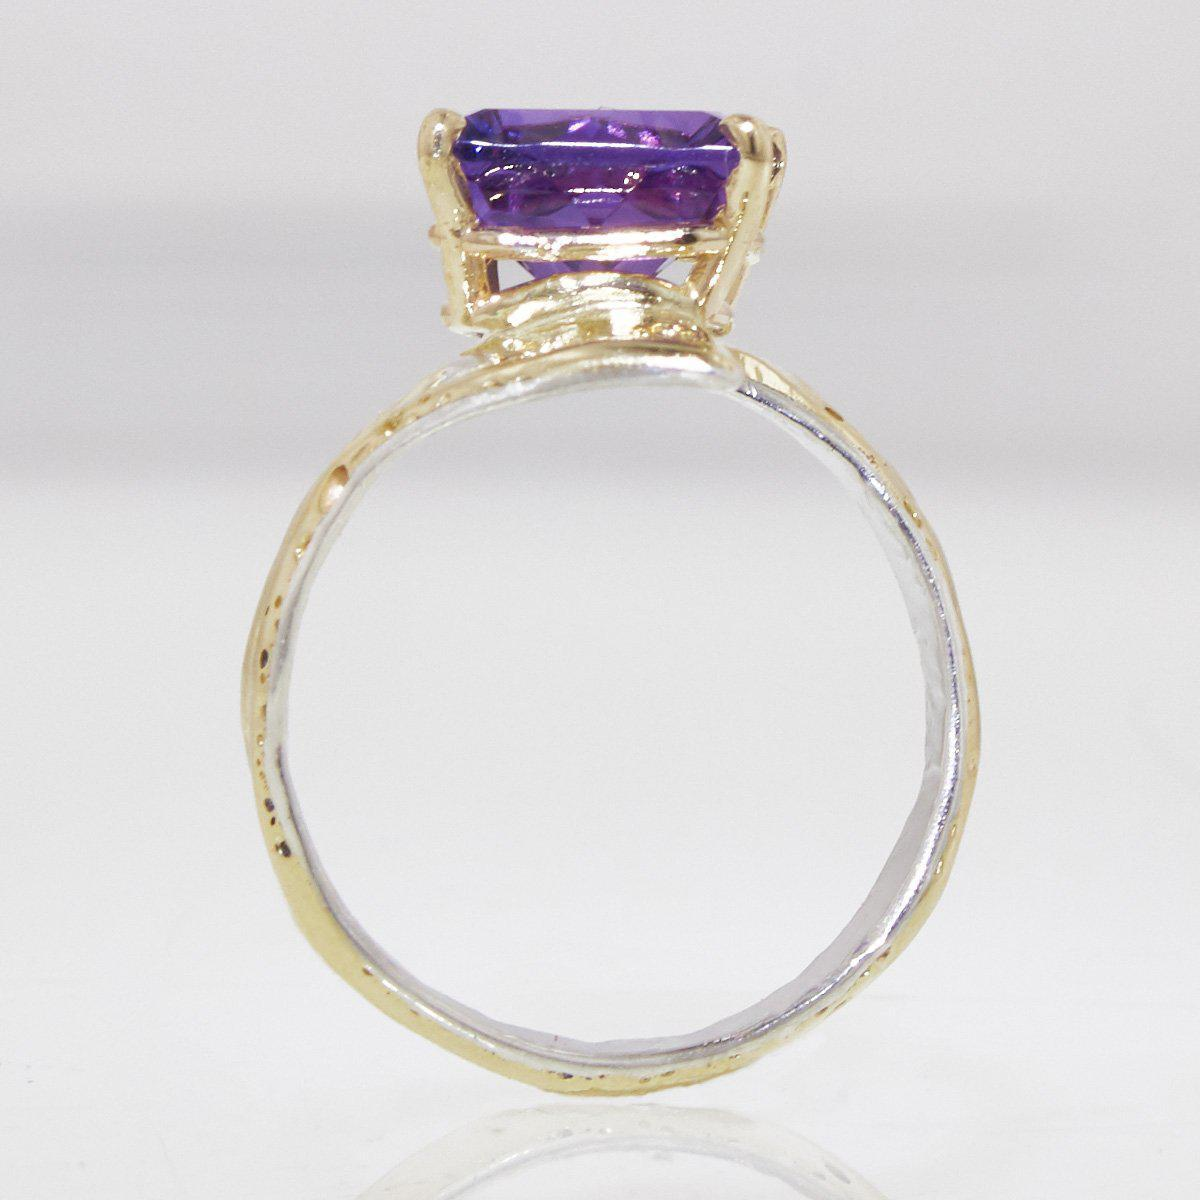 14K Gold & Crystalline Silver Amethyst Ring - 32870-Fusion Designs-Renee Taylor Gallery